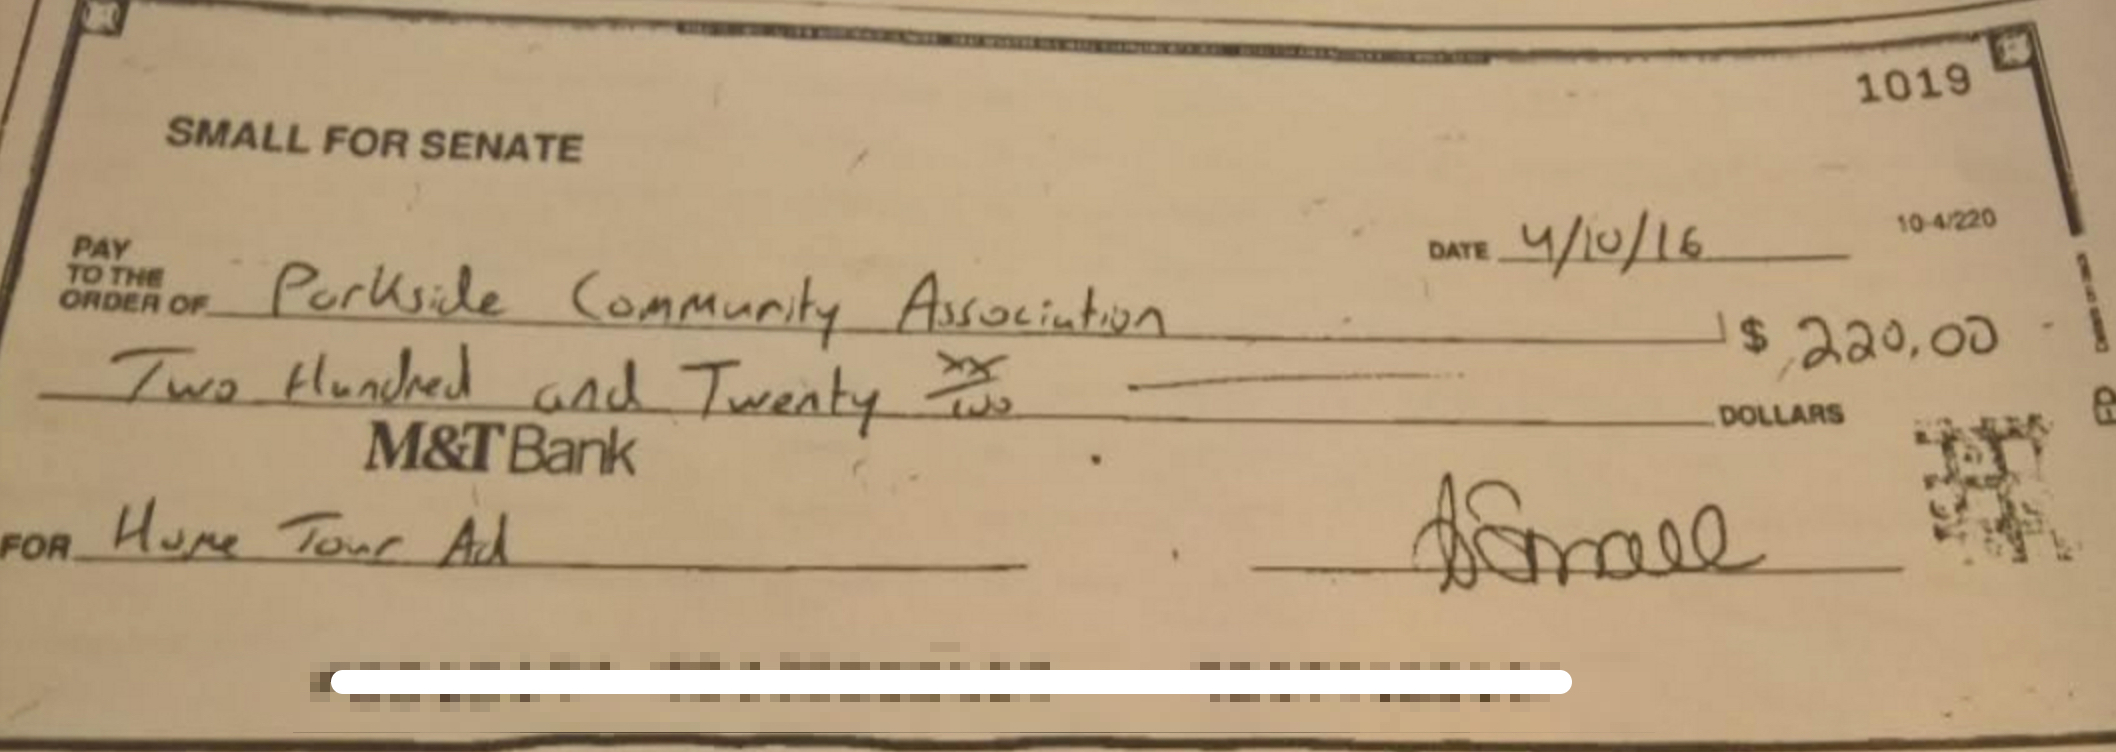 The Small campaign provided an image of what appears to be a check, which they claim was to purchase an advertisement from the Parkside Community Association. This publication has no way of independently verifying the authenticity of the image.